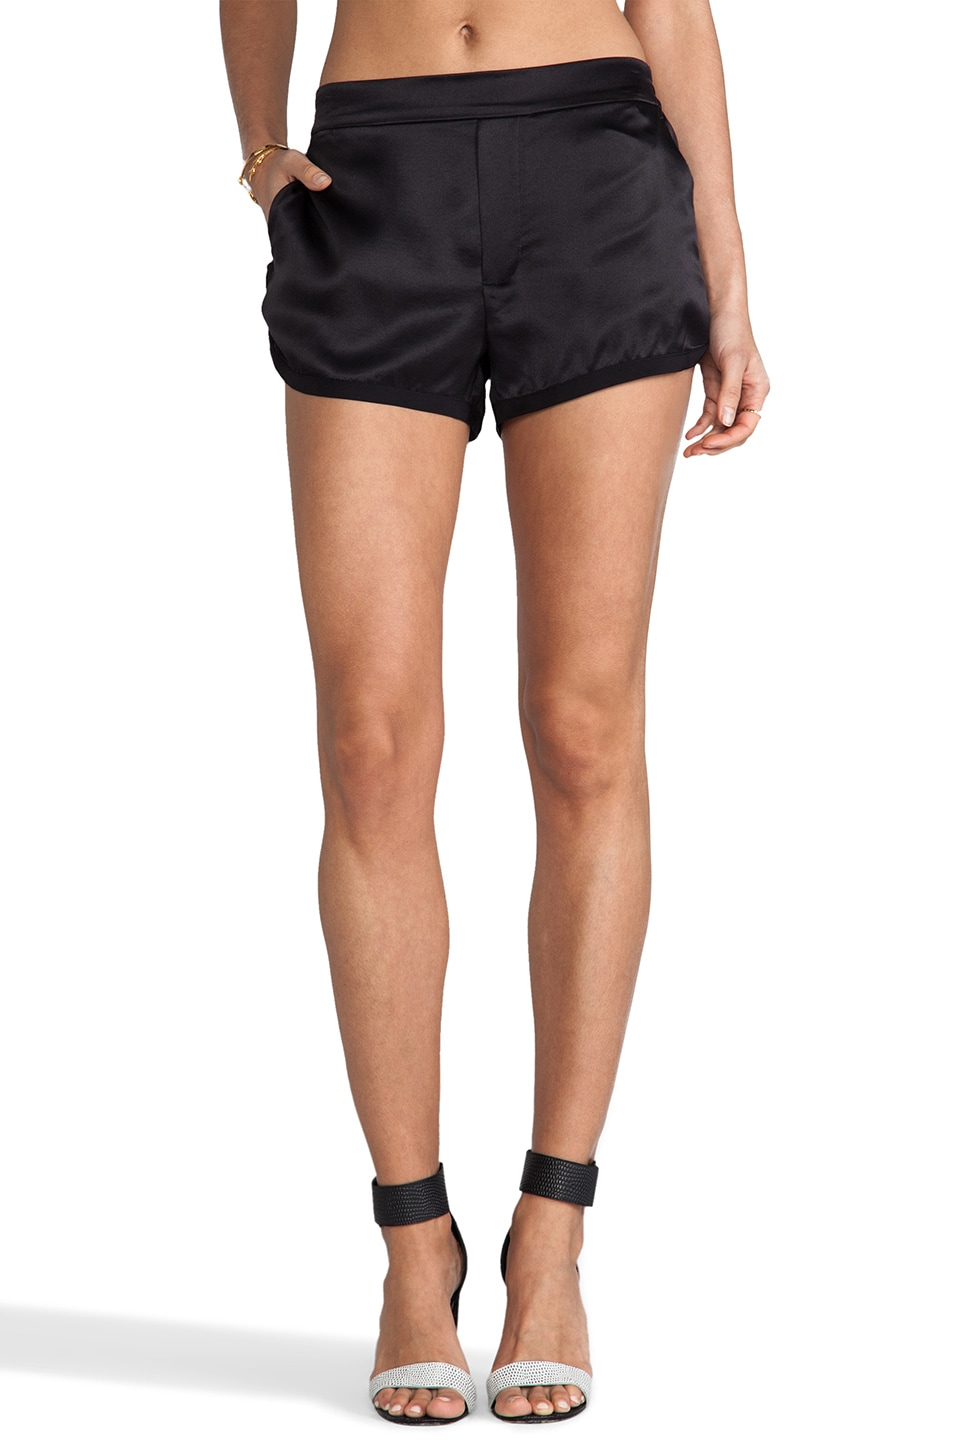 Marc by Marc Jacobs Julee Crepe Shorts in Black